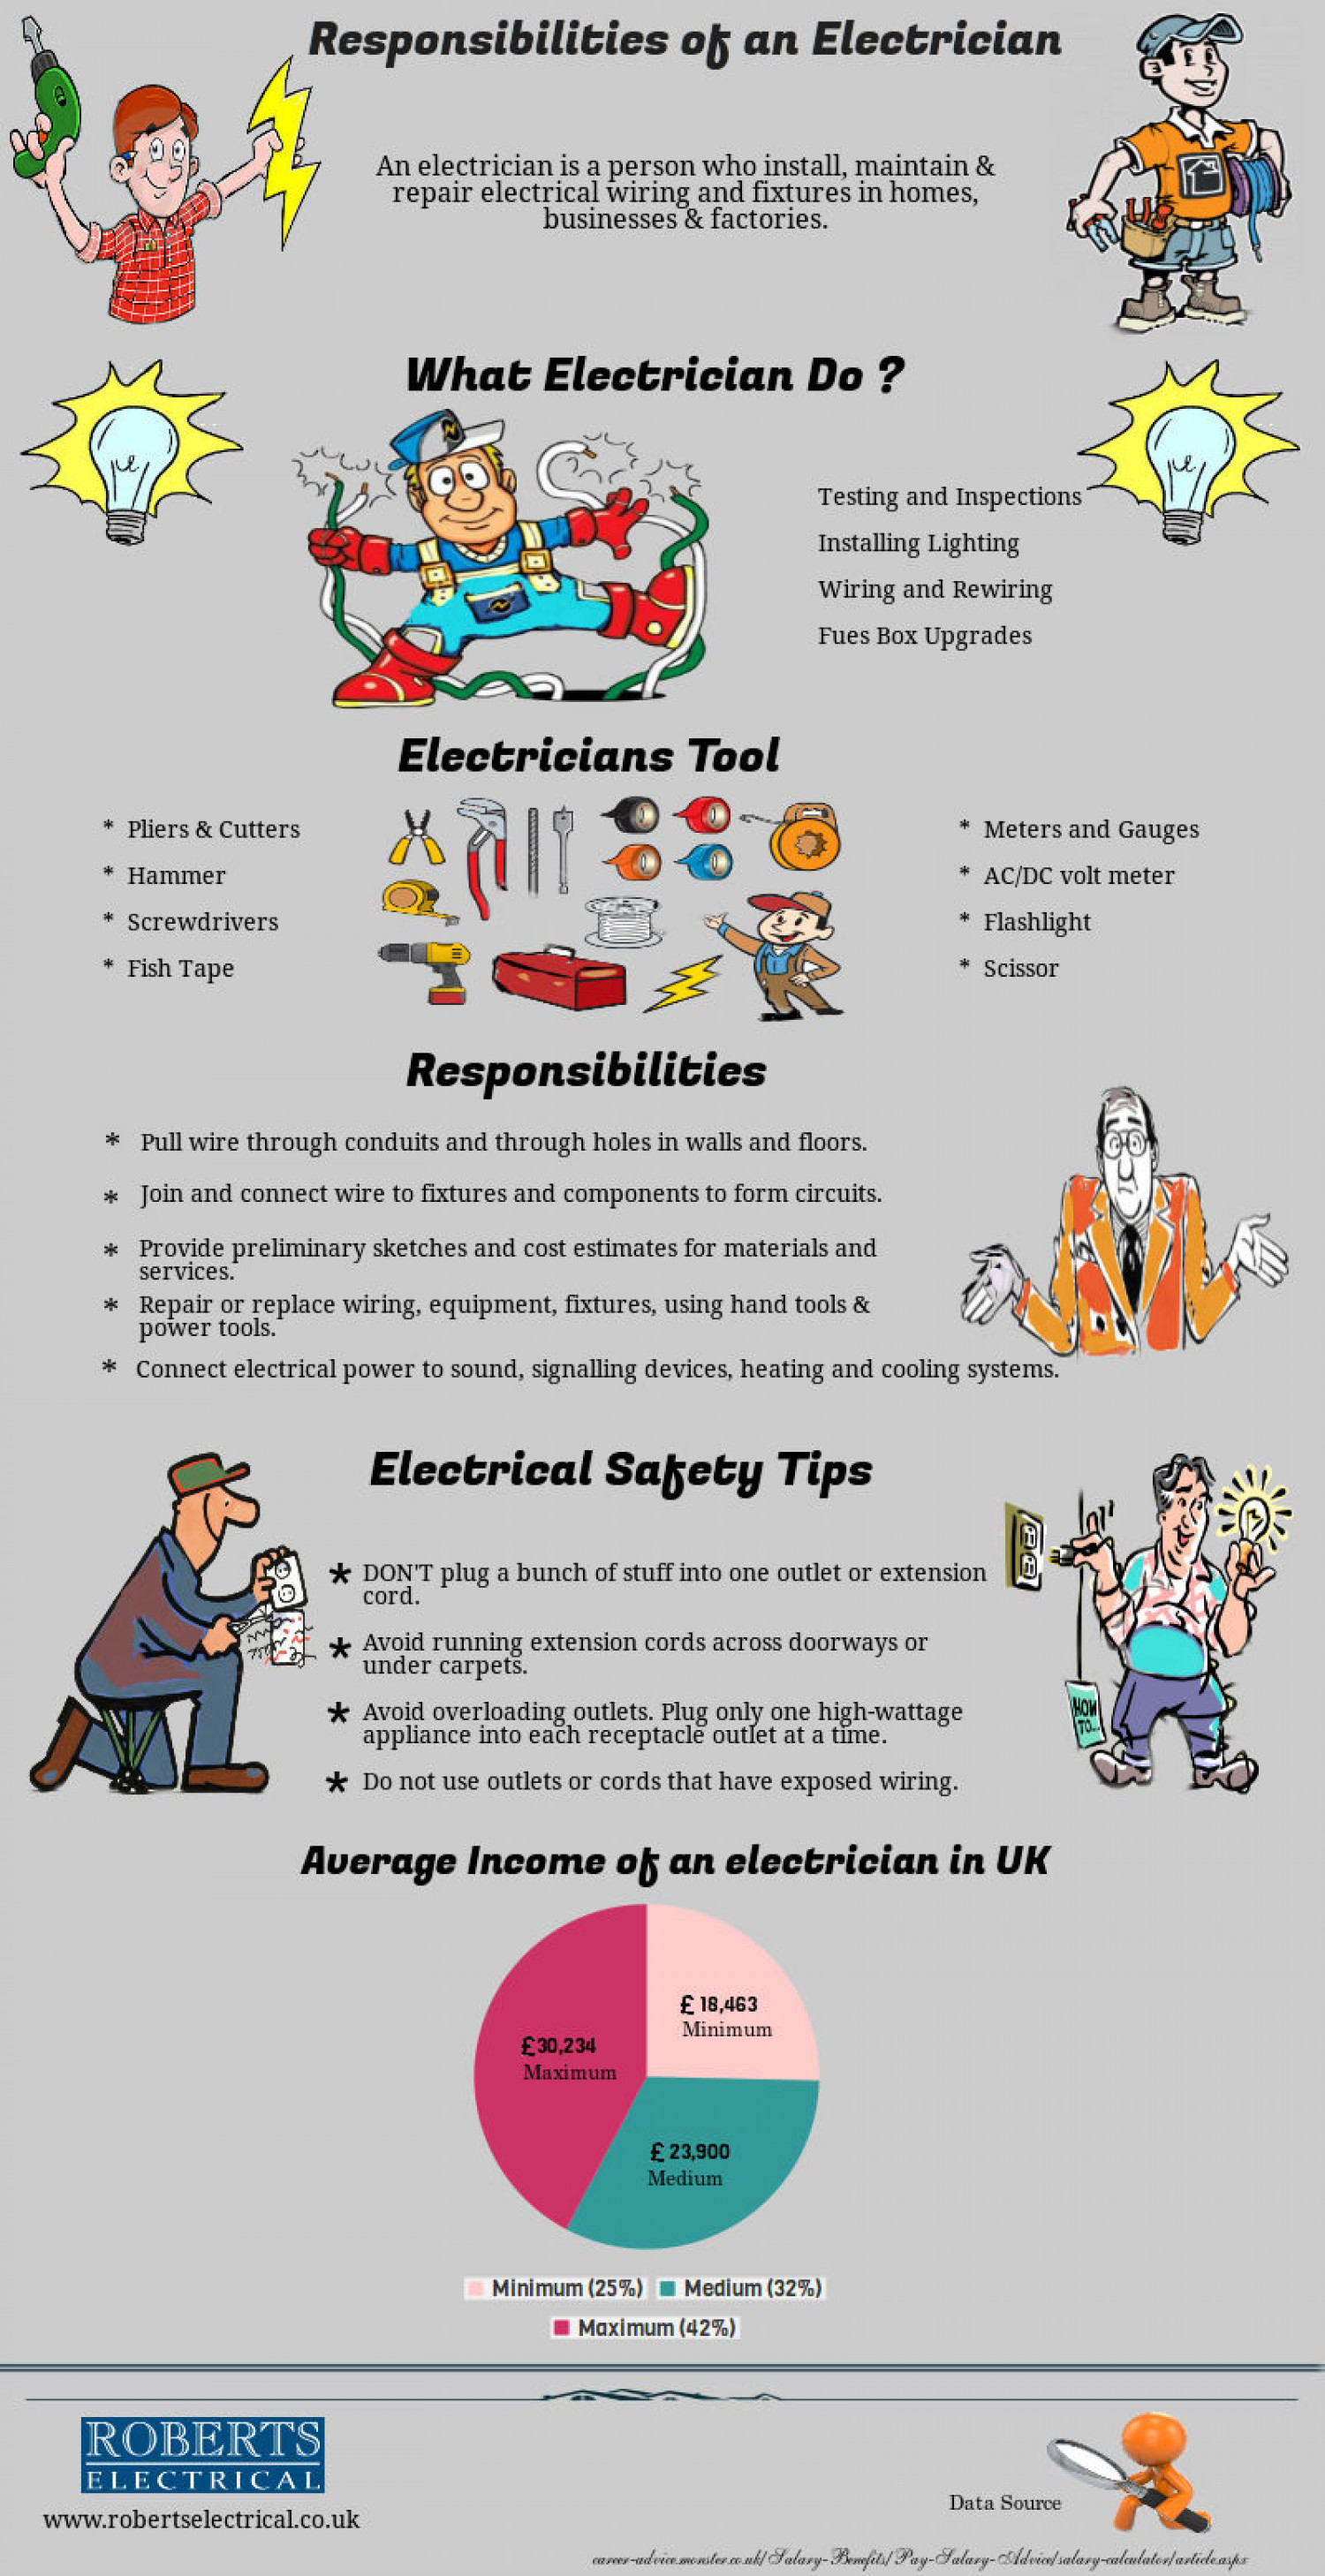 responsibilities of an electrician infographic - Responsibilities Of An Electrician